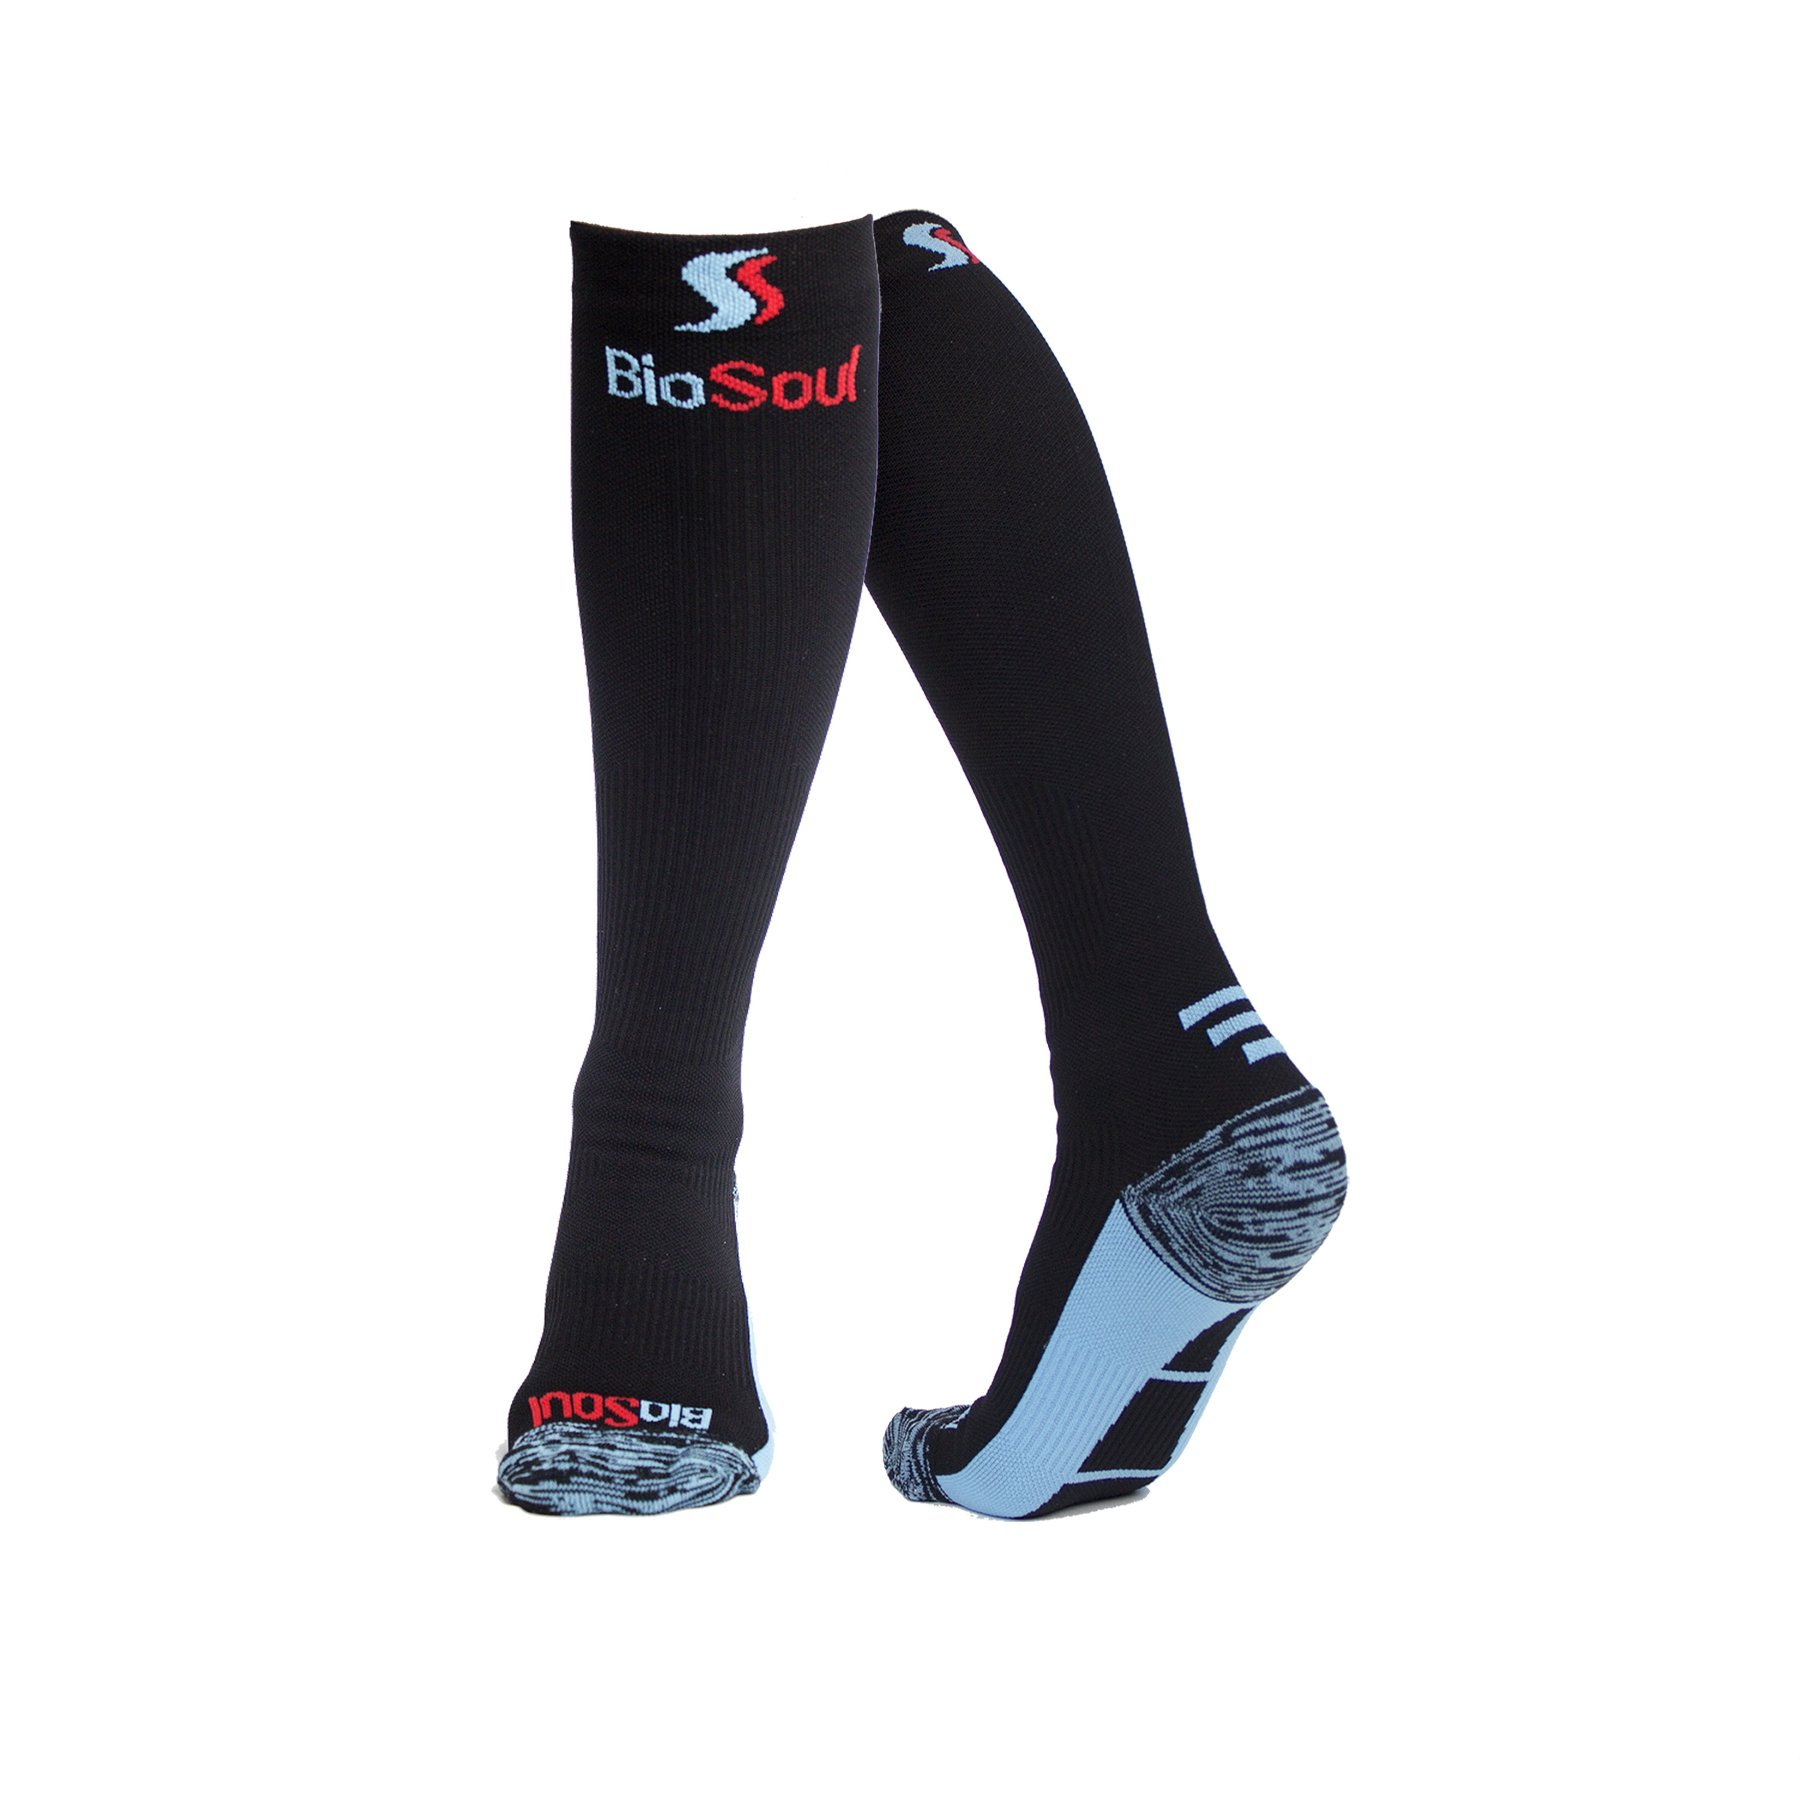 Compression Socks for Men, Women, Athletes, Nurses, Shin Splints, CrossFit, Hiking, Cycling, Flight Travel, Pregnancy, Recovery, Diabetics, Active/Inactive Lifestyle, Boost Stamina and Circulation